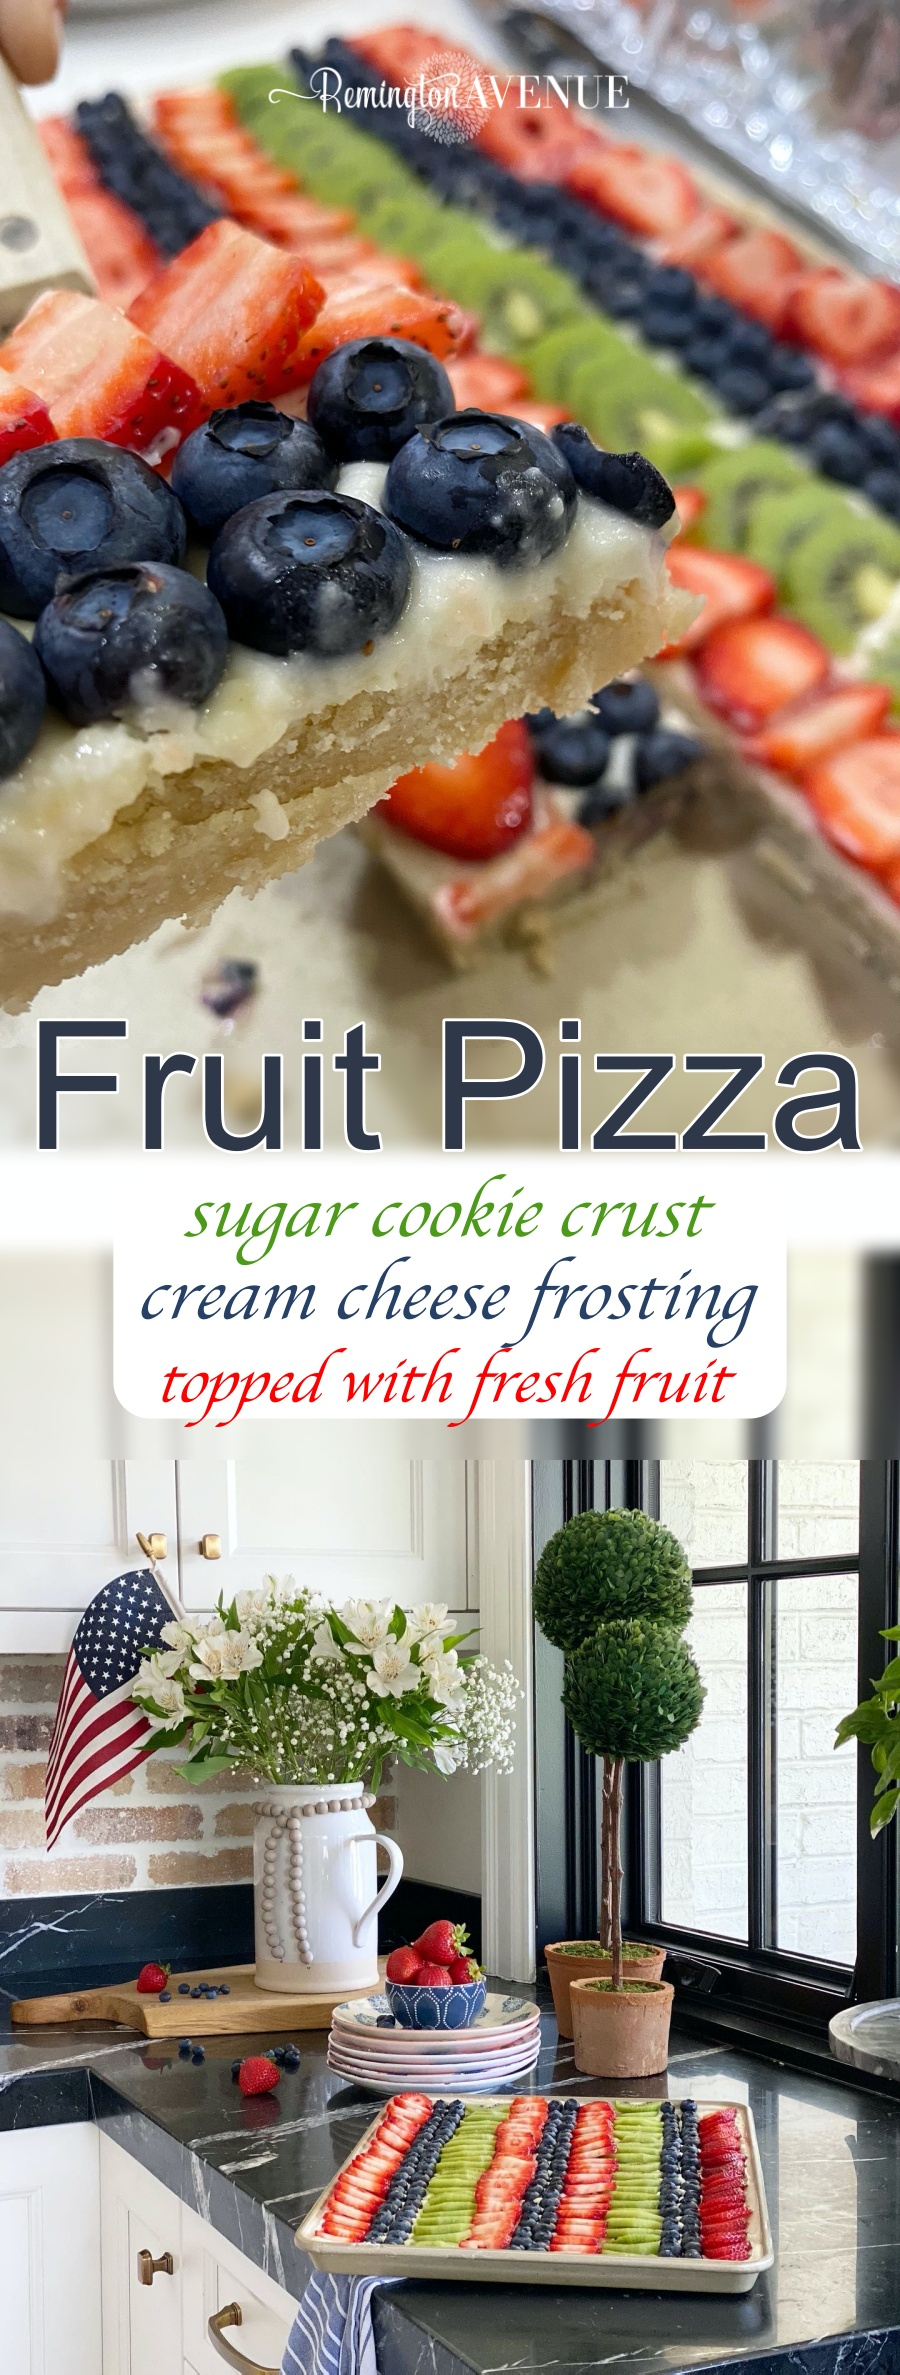 fruit pizza- summer treat favorite